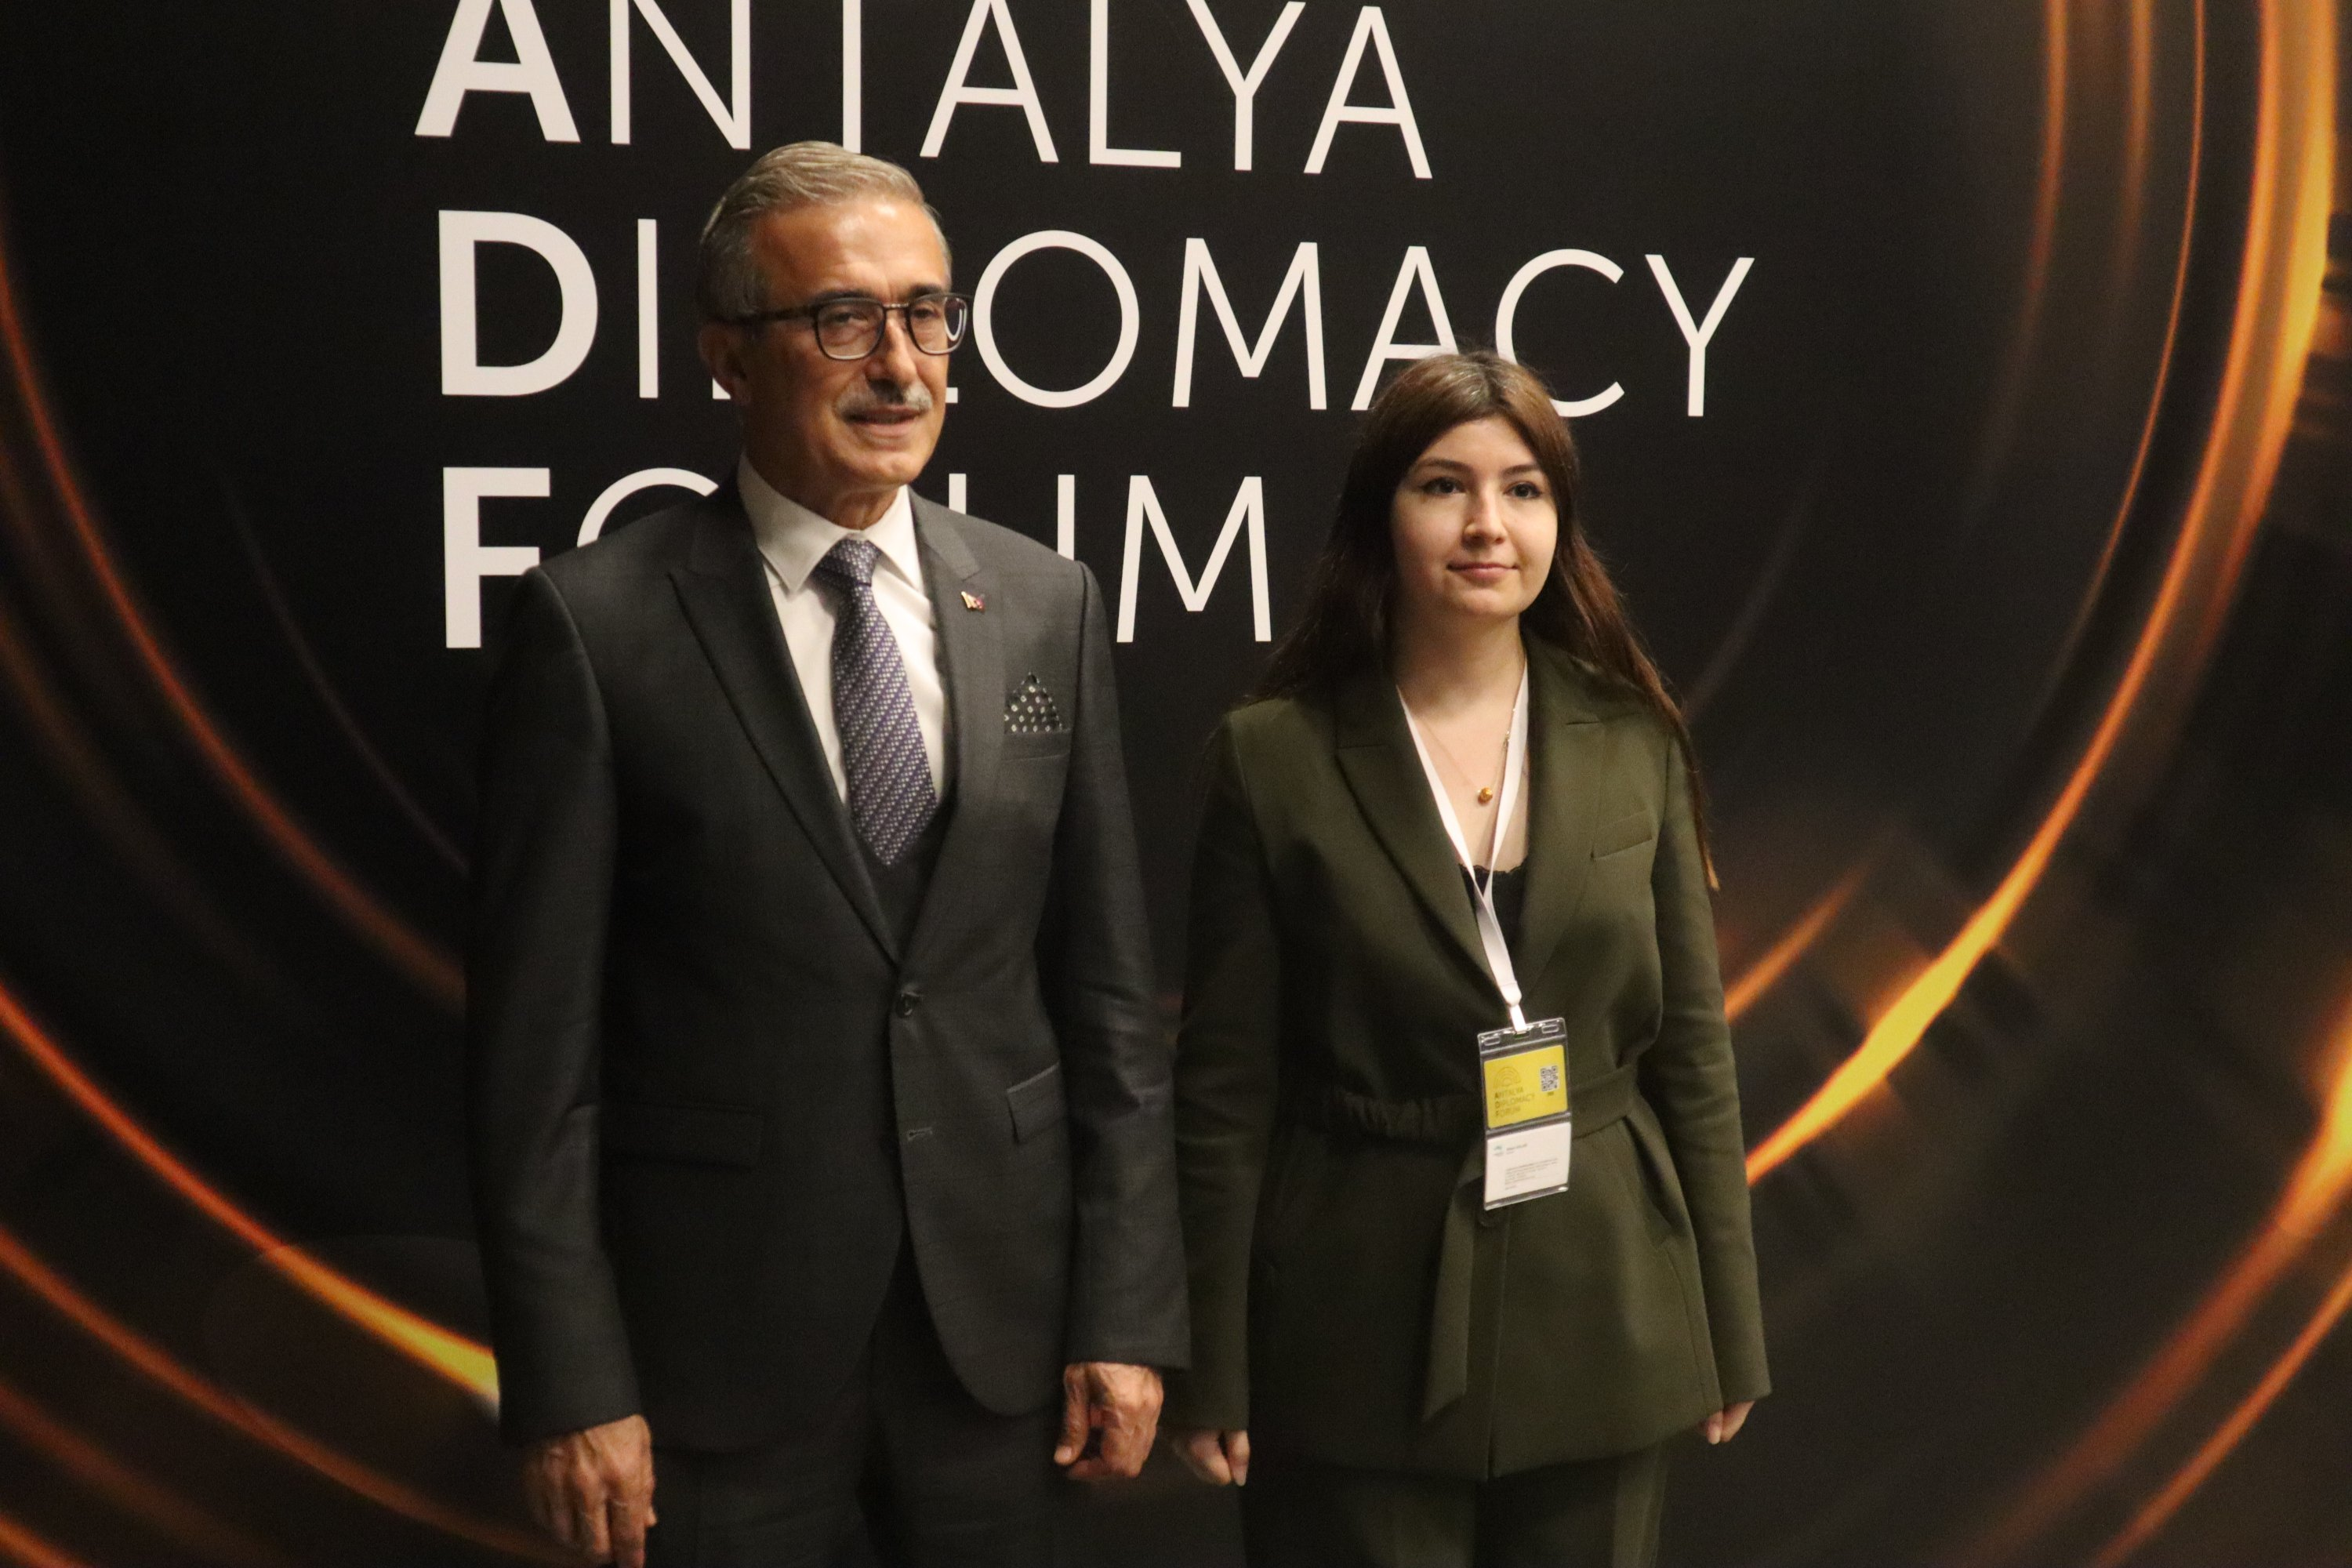 Presidency of Defense Industries (SSB) Chairperson Ismail Demir together with Daily Sabah's Dilara Aslan at the Antalya Diplomacy Forum in Antalya province, June 19, 2021 (Daily Sabah Photo)